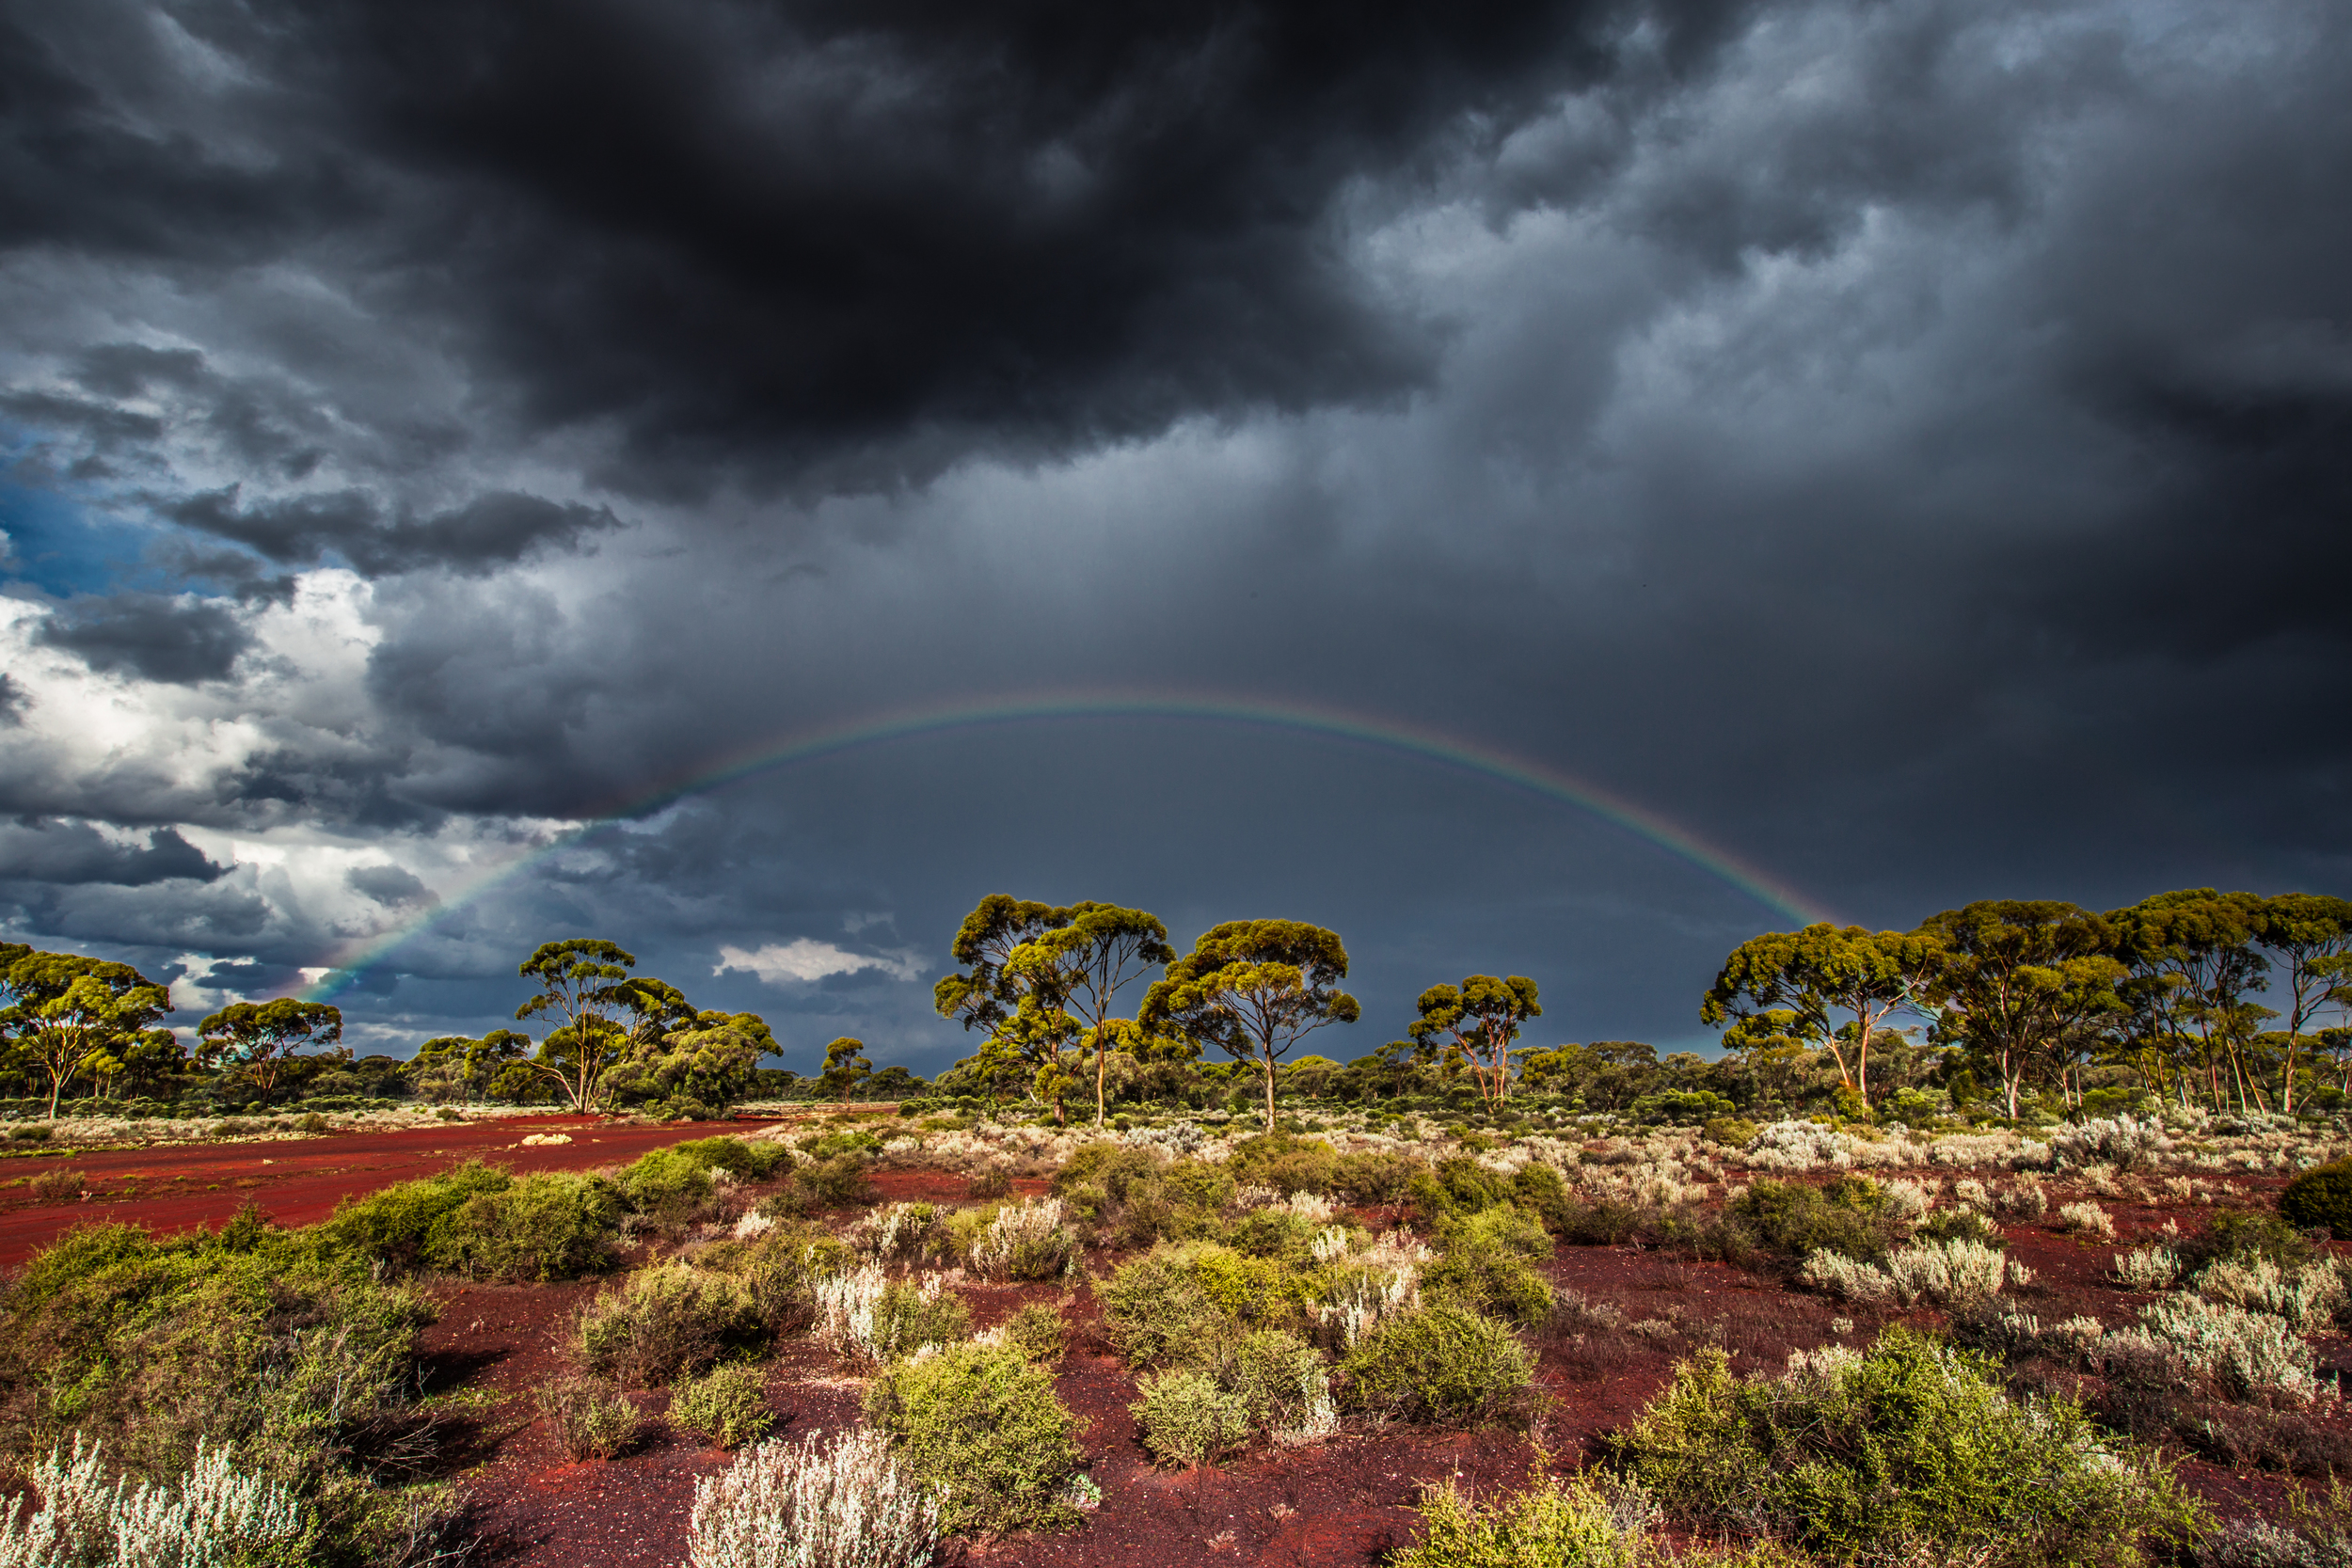 Rainbow over the Eastern Goldfields. Image credit to: DMR Photography. Image supplied courtesy of the Goldfields Tourism Network Inc.